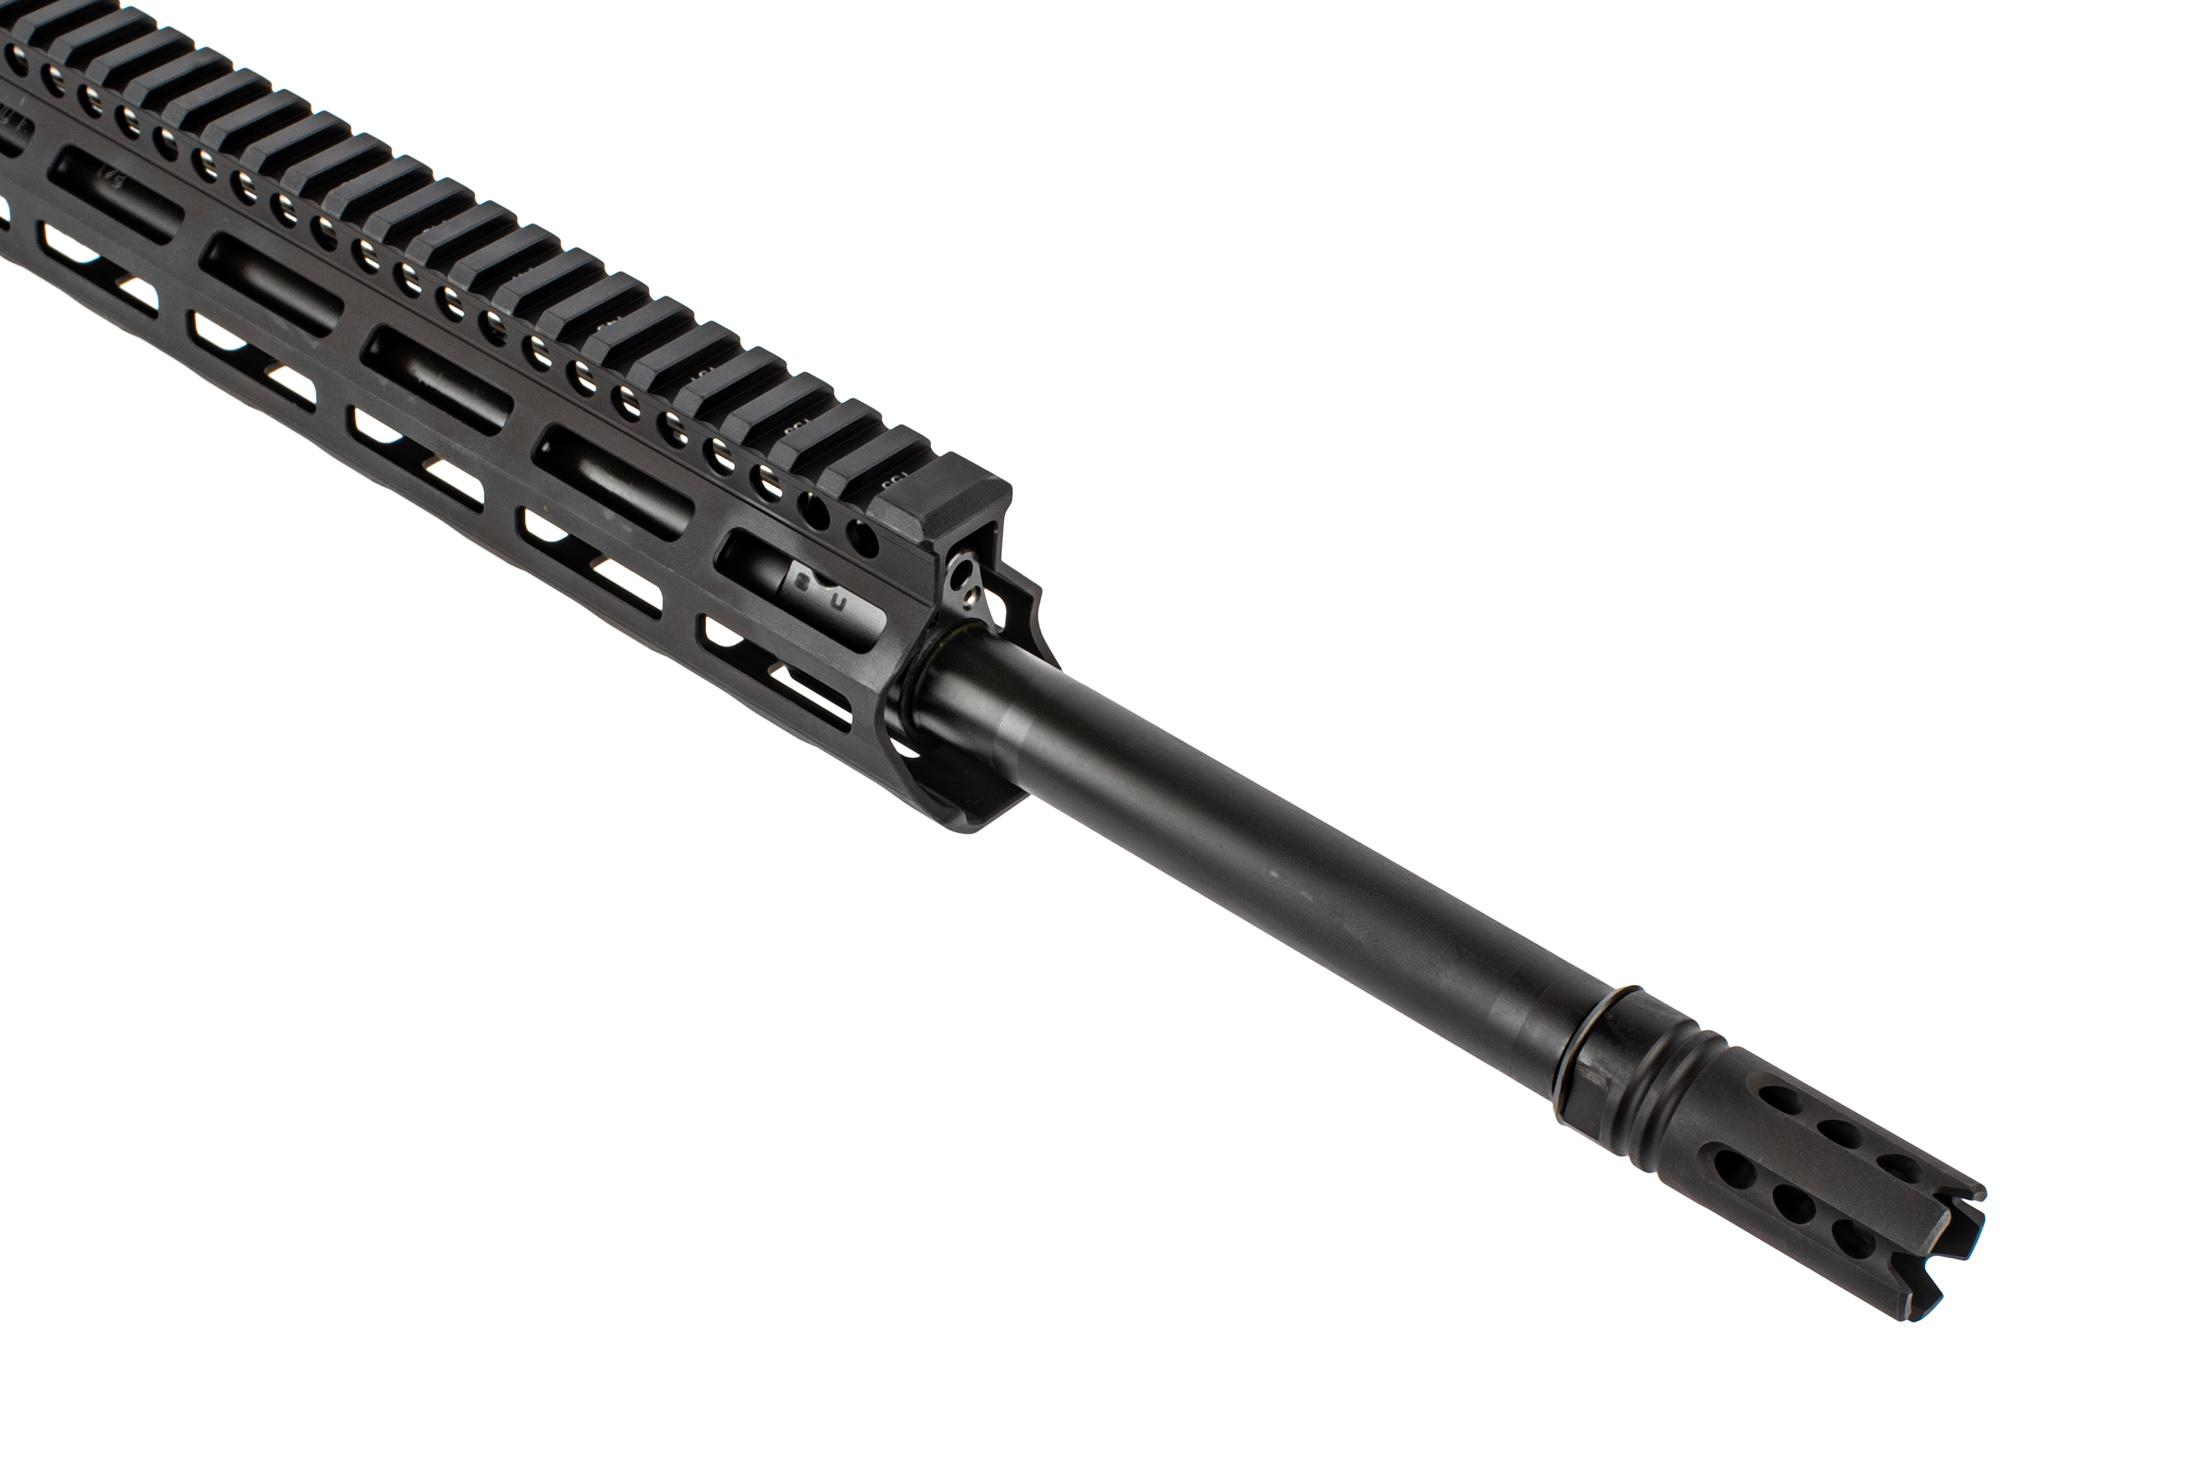 Daniel Defense complete DD5V4 upper with 20 6.5 creedmoor barrel is threaded 5/8x24 with a flash suppressor